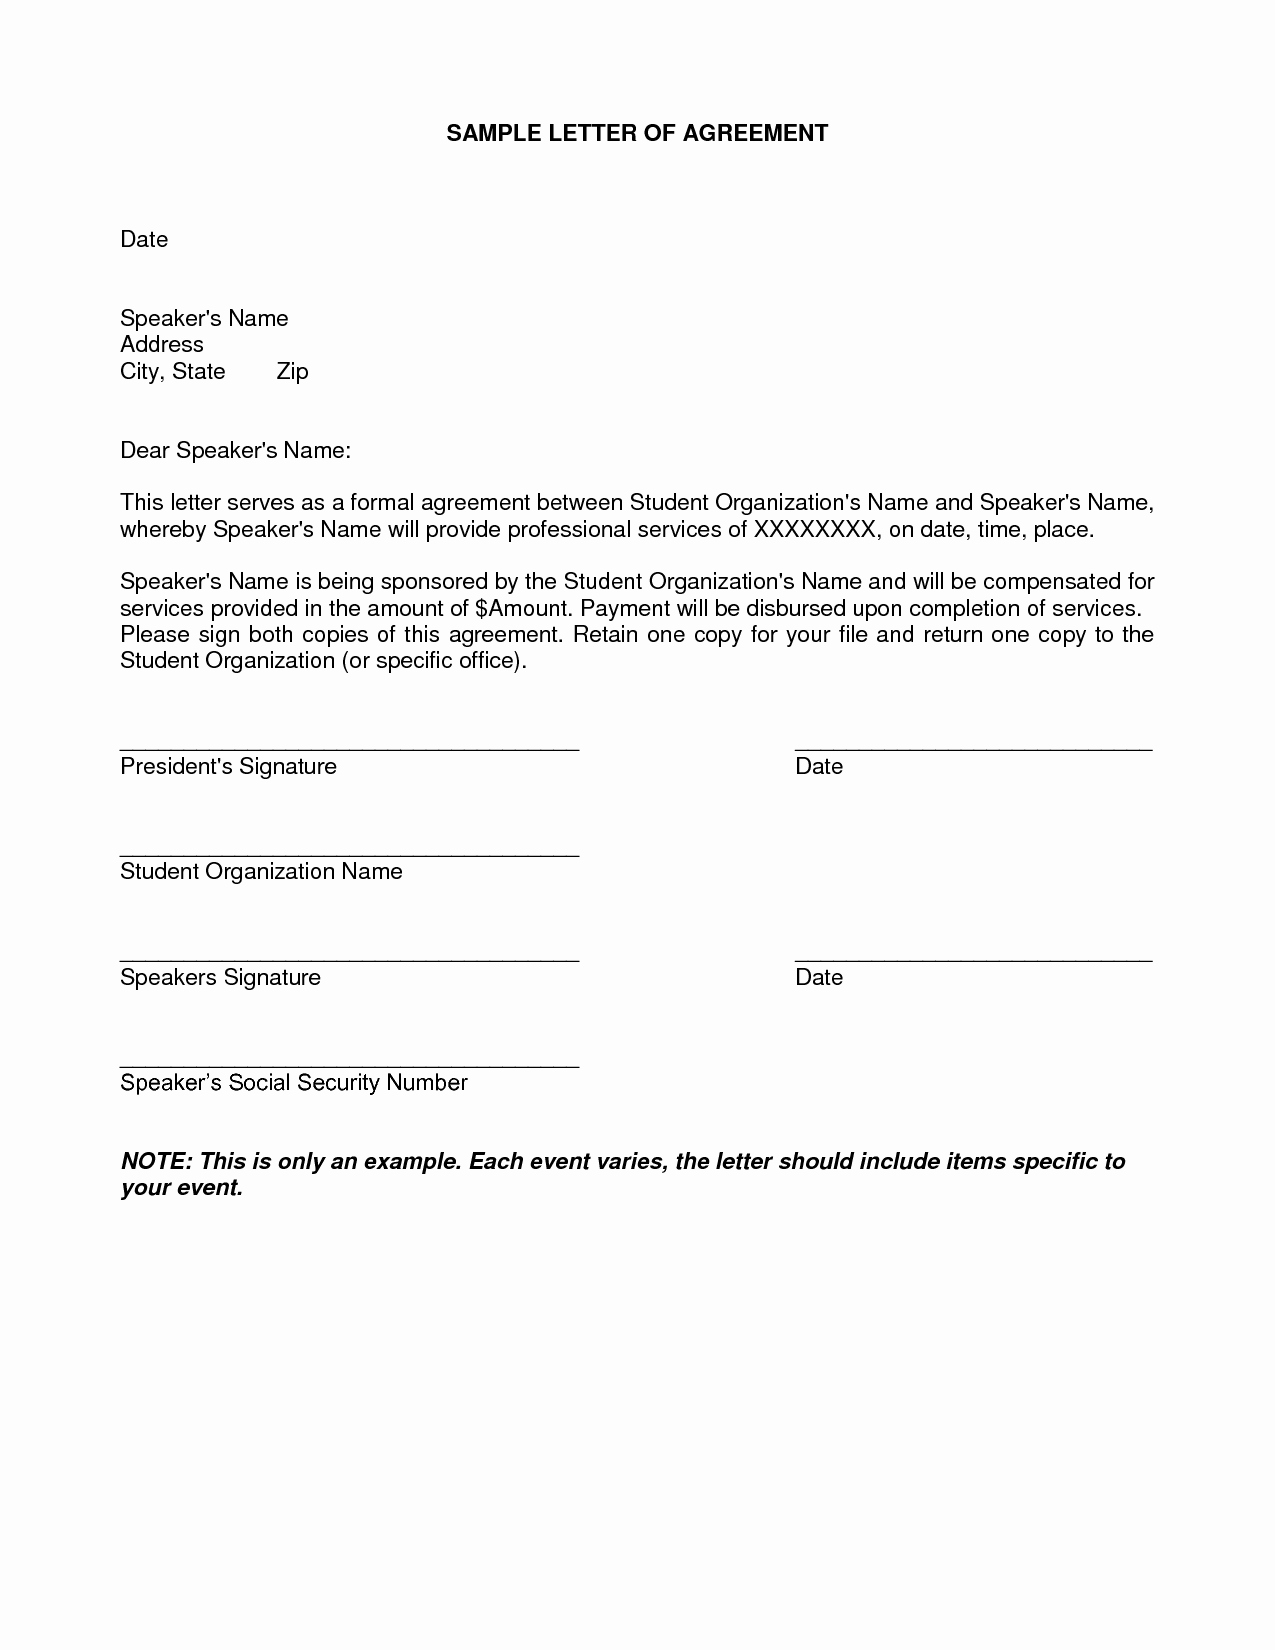 Personal Service Contract Template New Free Printable Letter Of Agreement form Generic